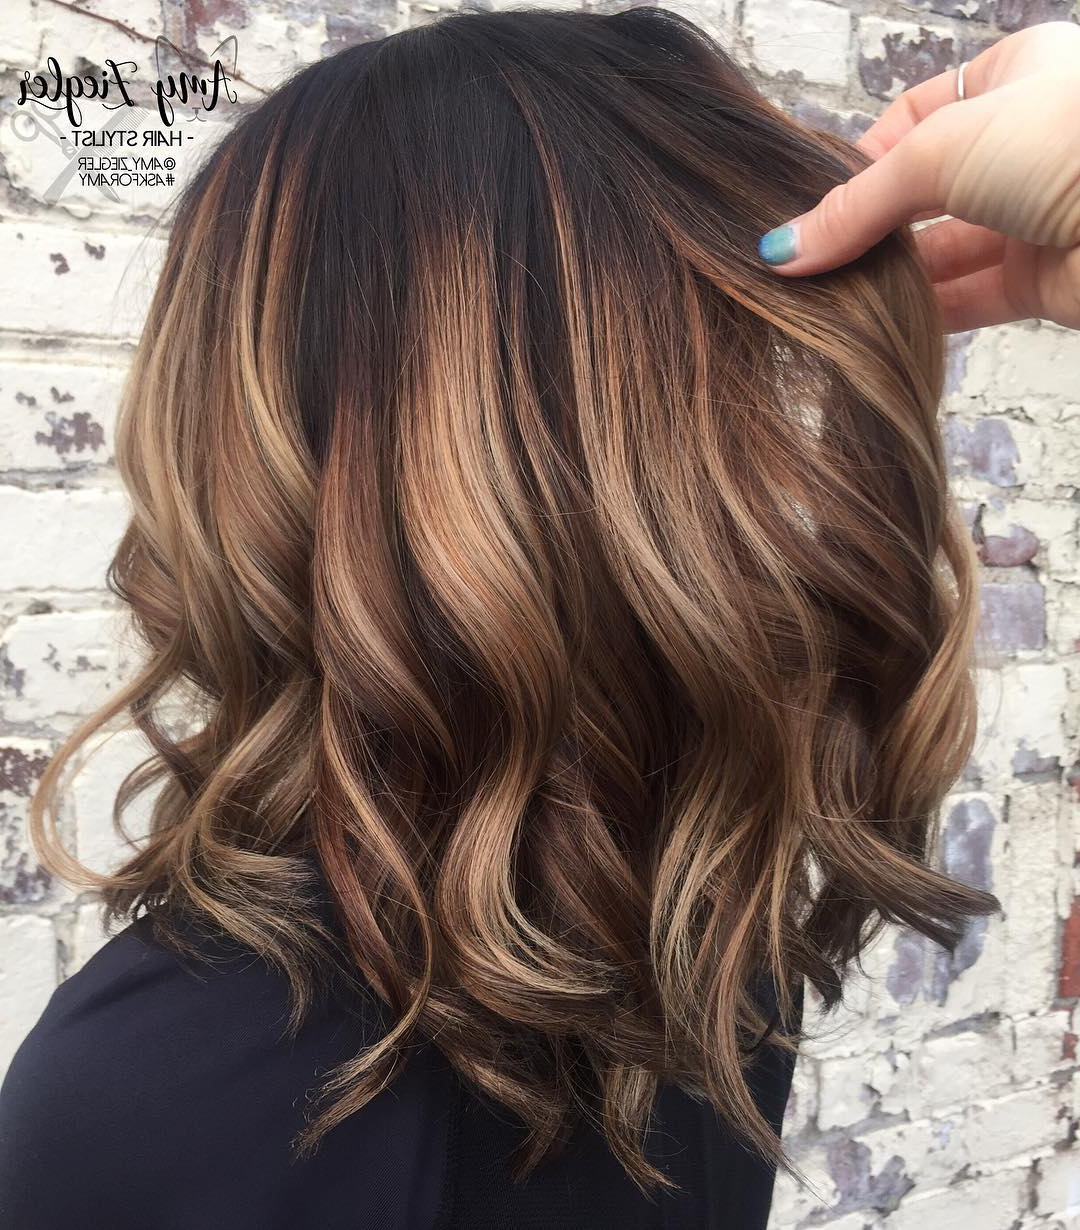 10 Trendy Brown Balayage Hairstyles For Medium Length Hair 2019 For Most Up To Date Medium Brown Tones Hairstyles With Subtle Highlights (View 2 of 20)